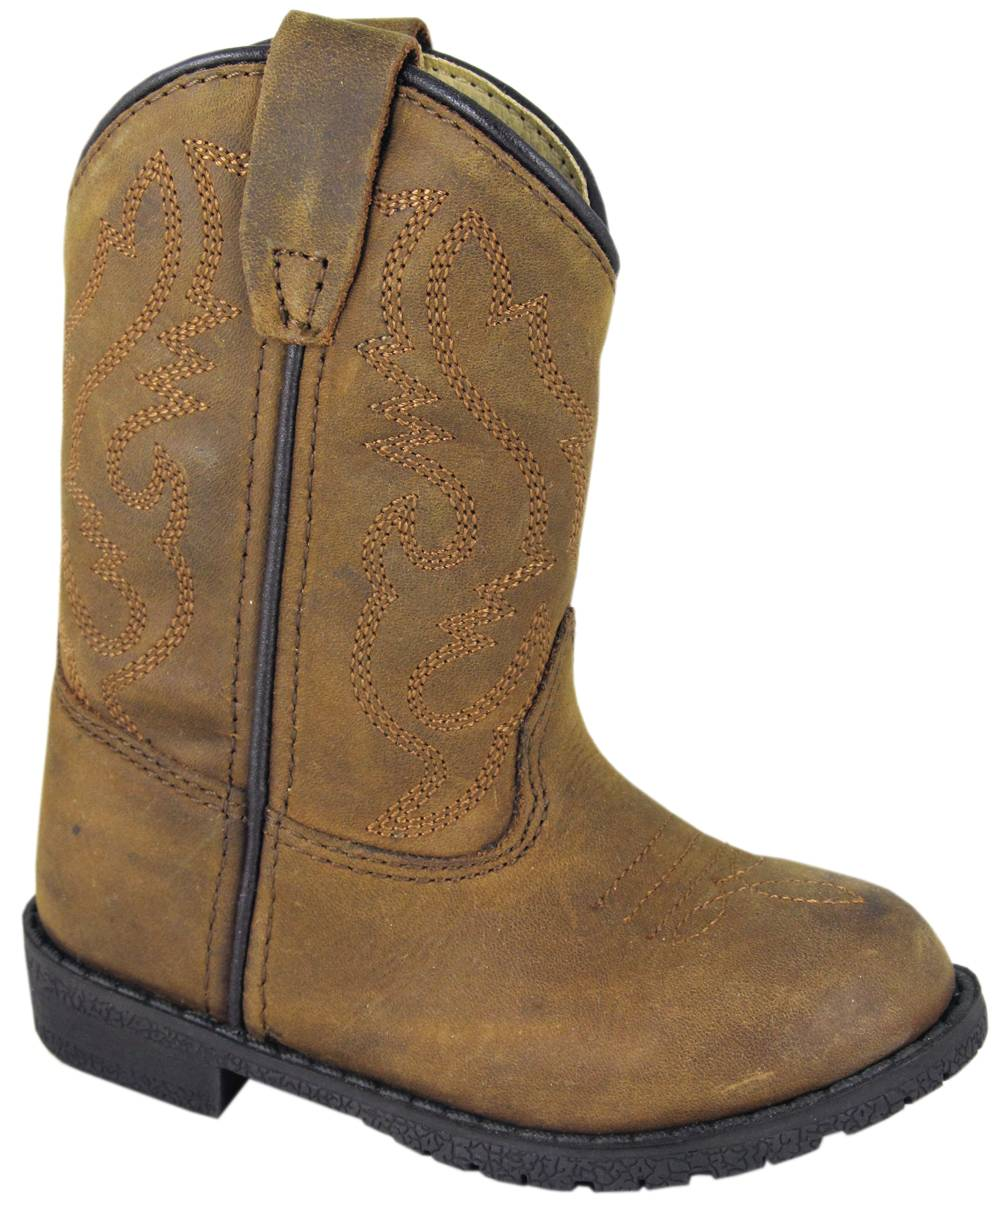 Smoky Mountain Hopalong Western Boots - Toddler, Brown Distress